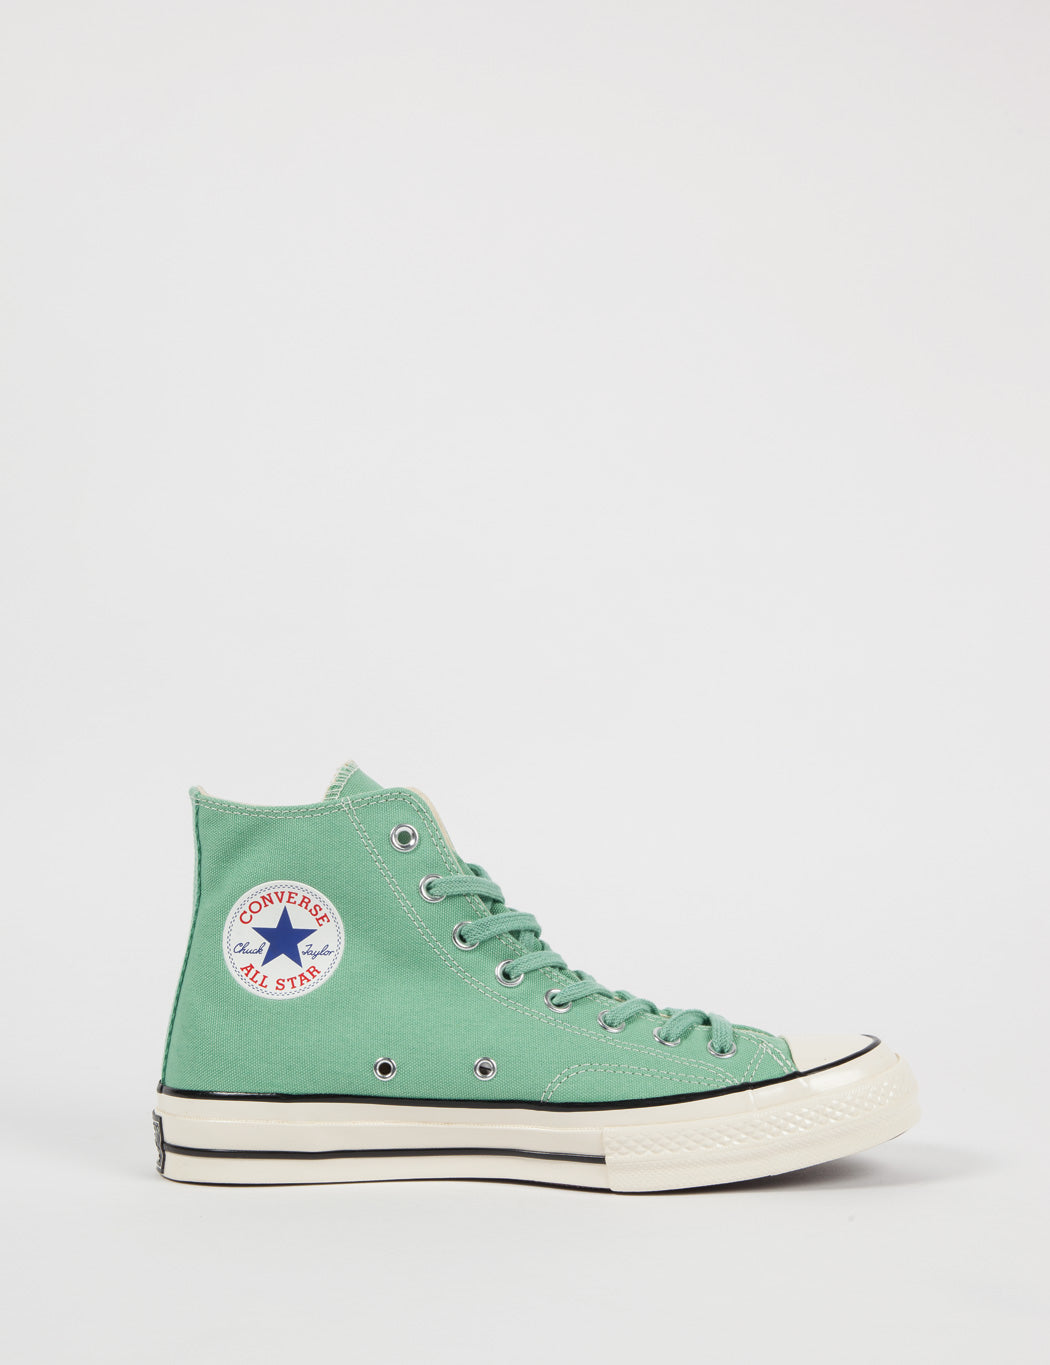 Converse 70's Chuck Taylor Hi (Canvas) - Jaded Green